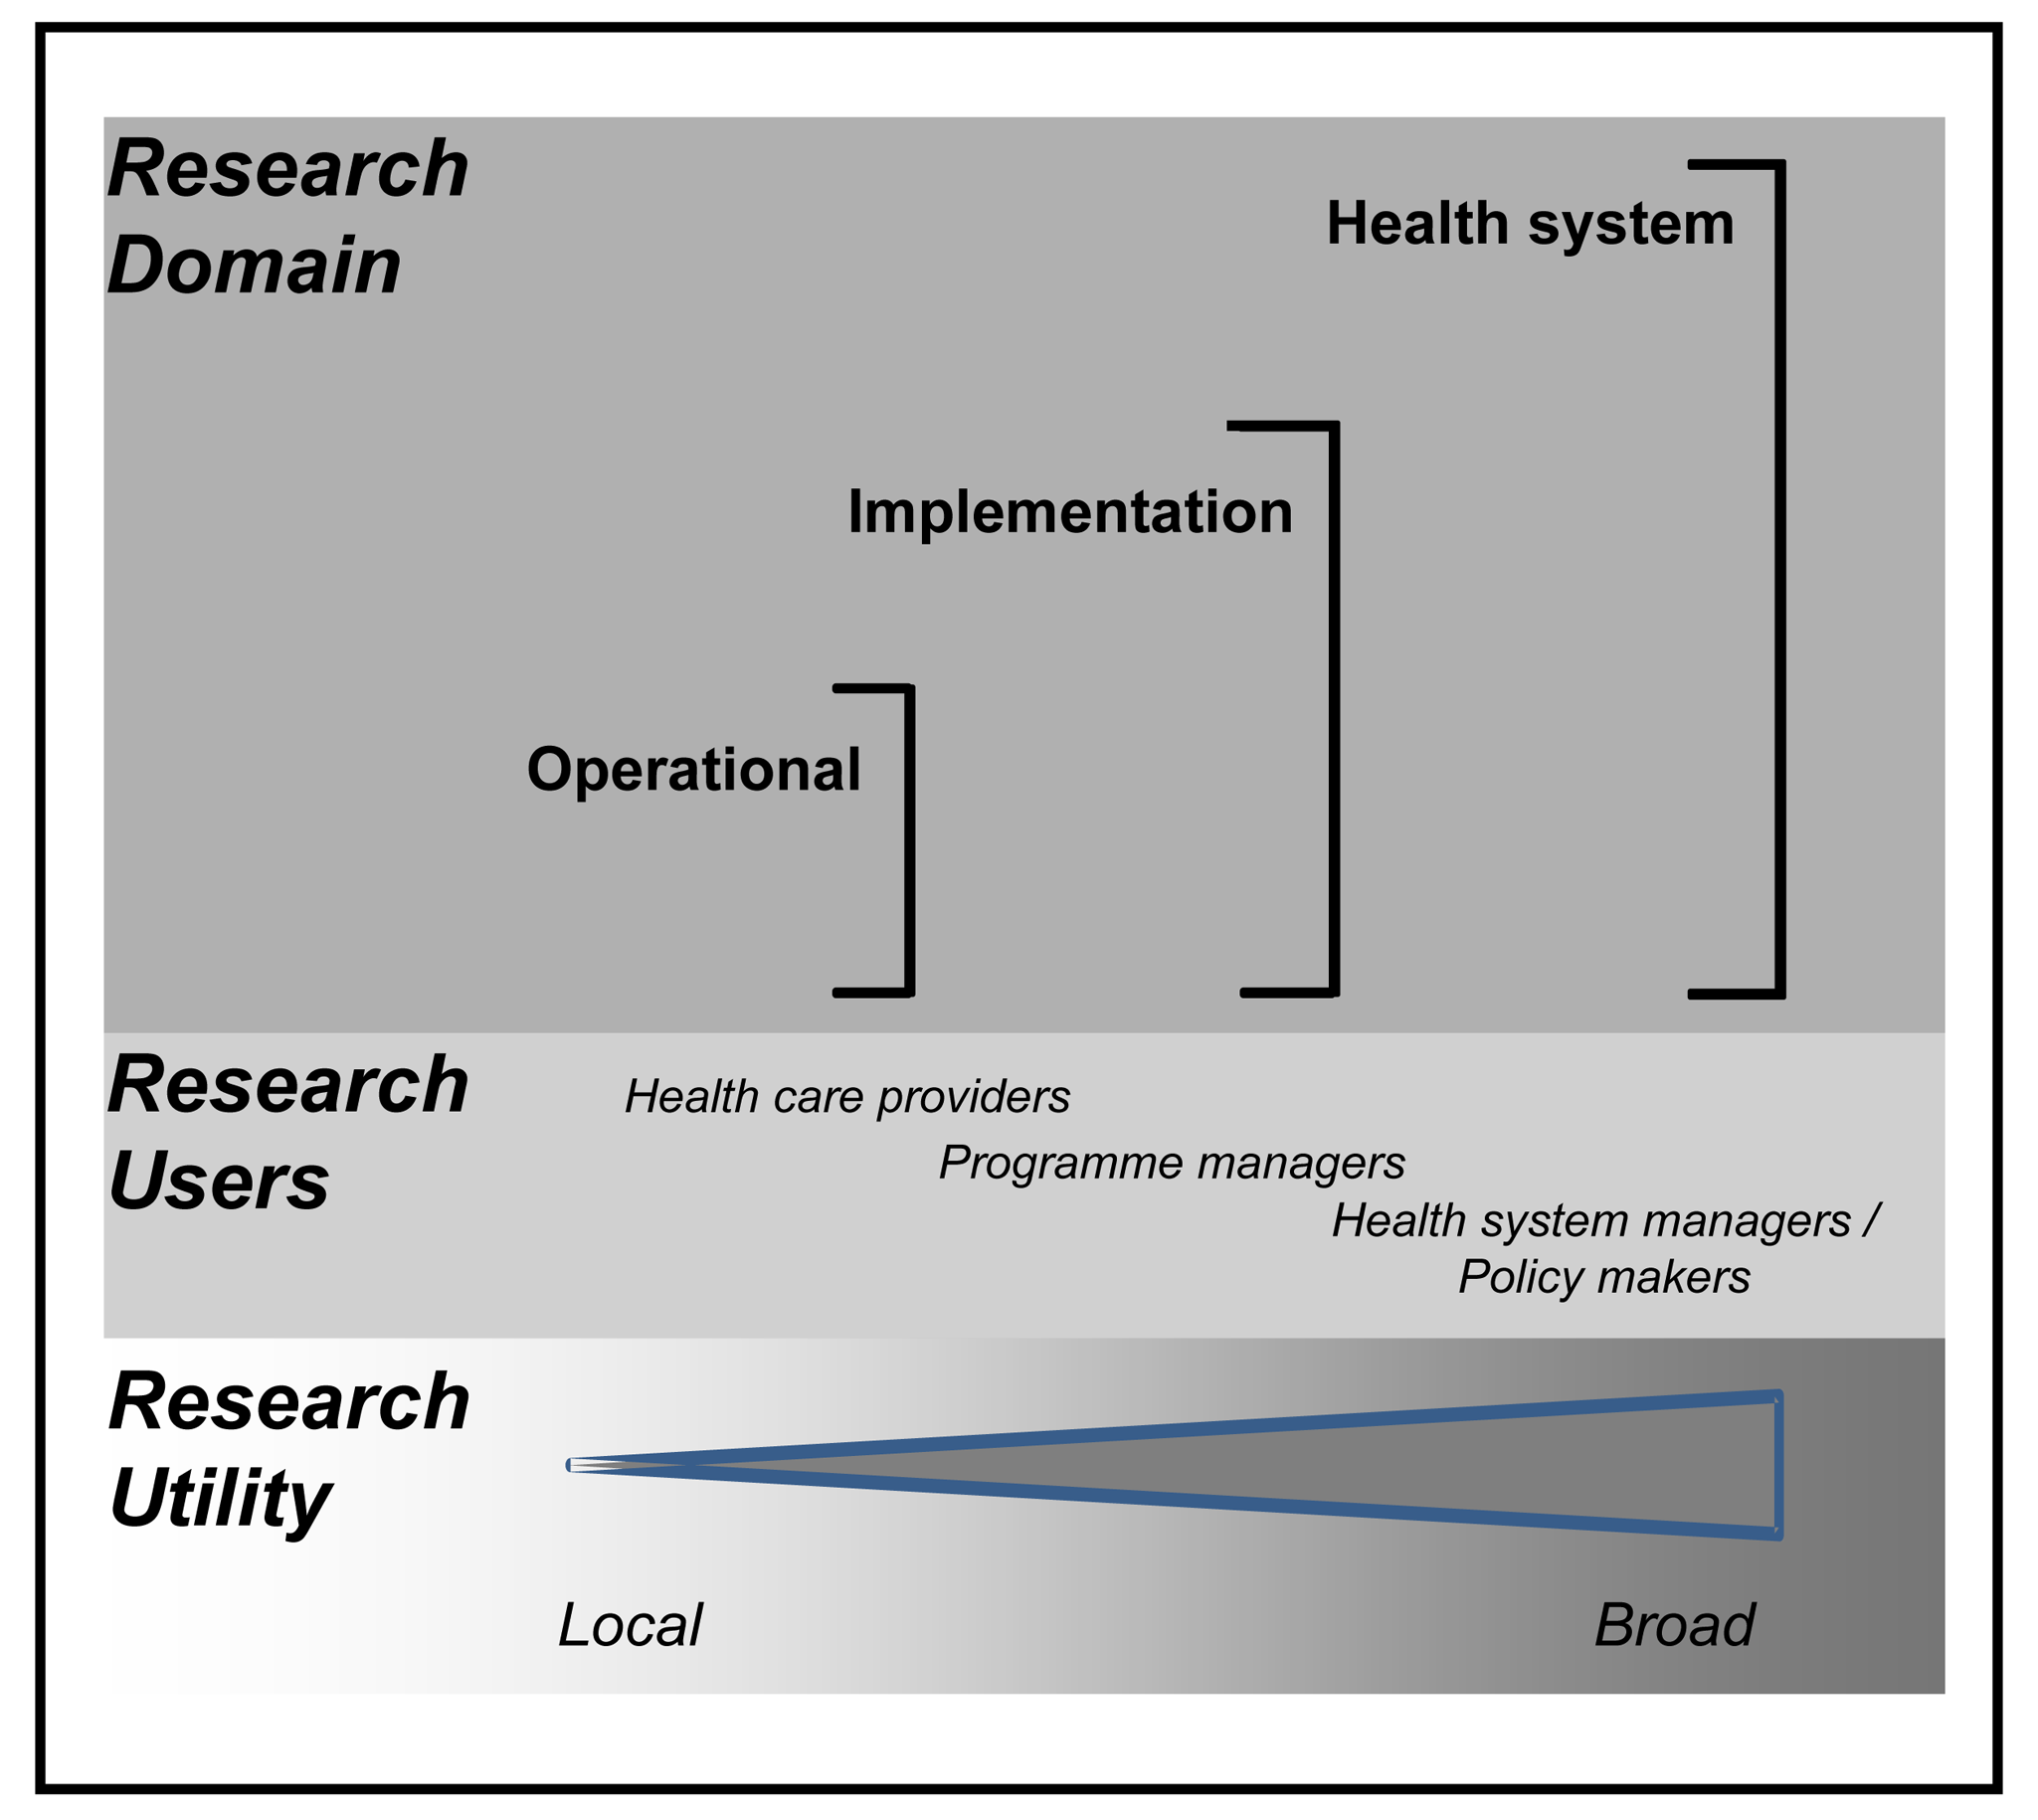 Research to improve health systems.